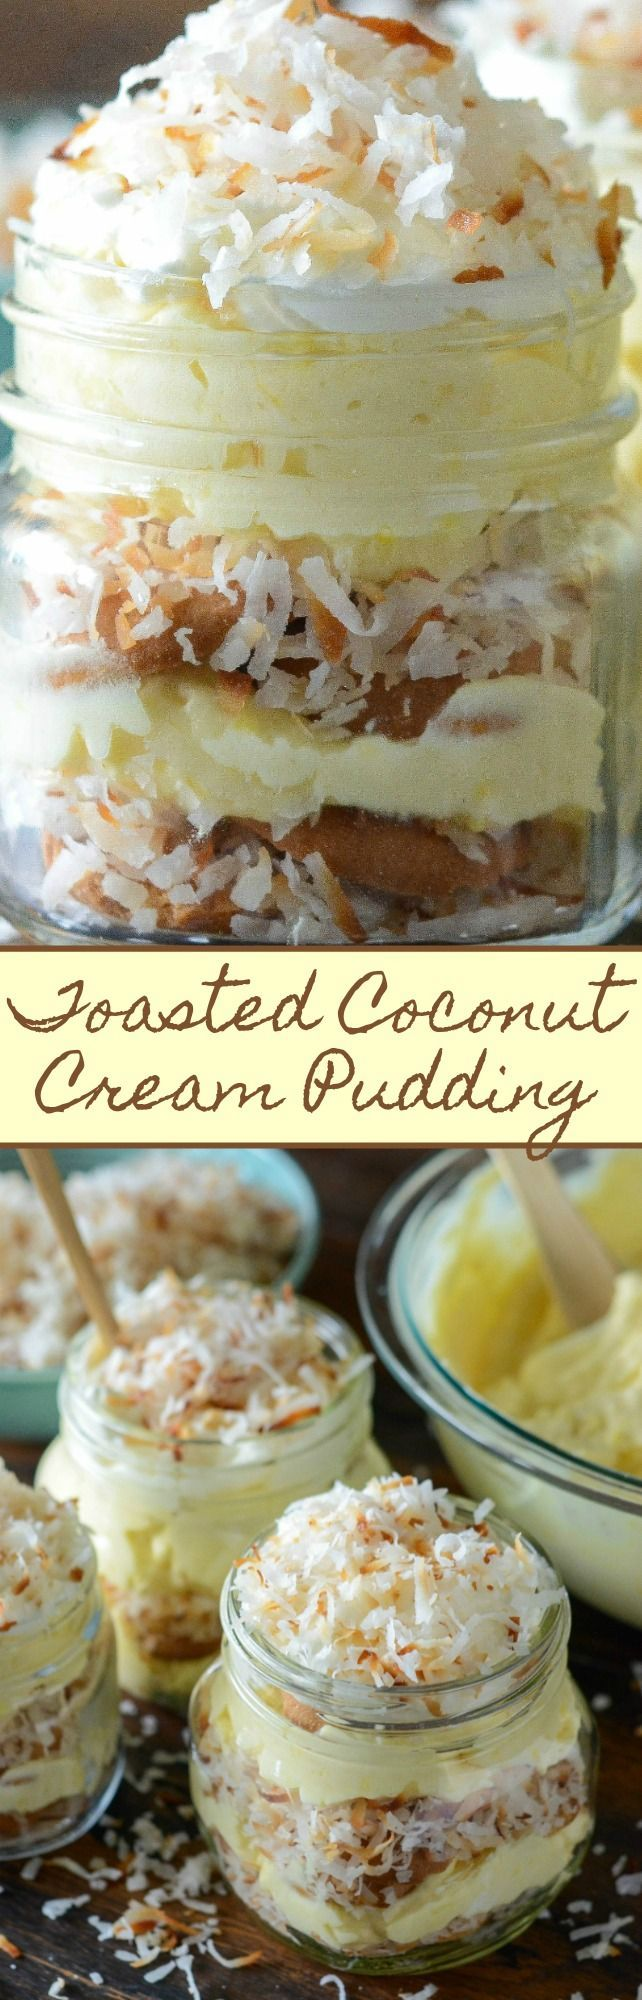 Toasted Coconut Cream Pudding: a cross between coconut cream pie & banana pudding, with layers of creamy coconut pudding, vanilla wafers & toasted coconut!